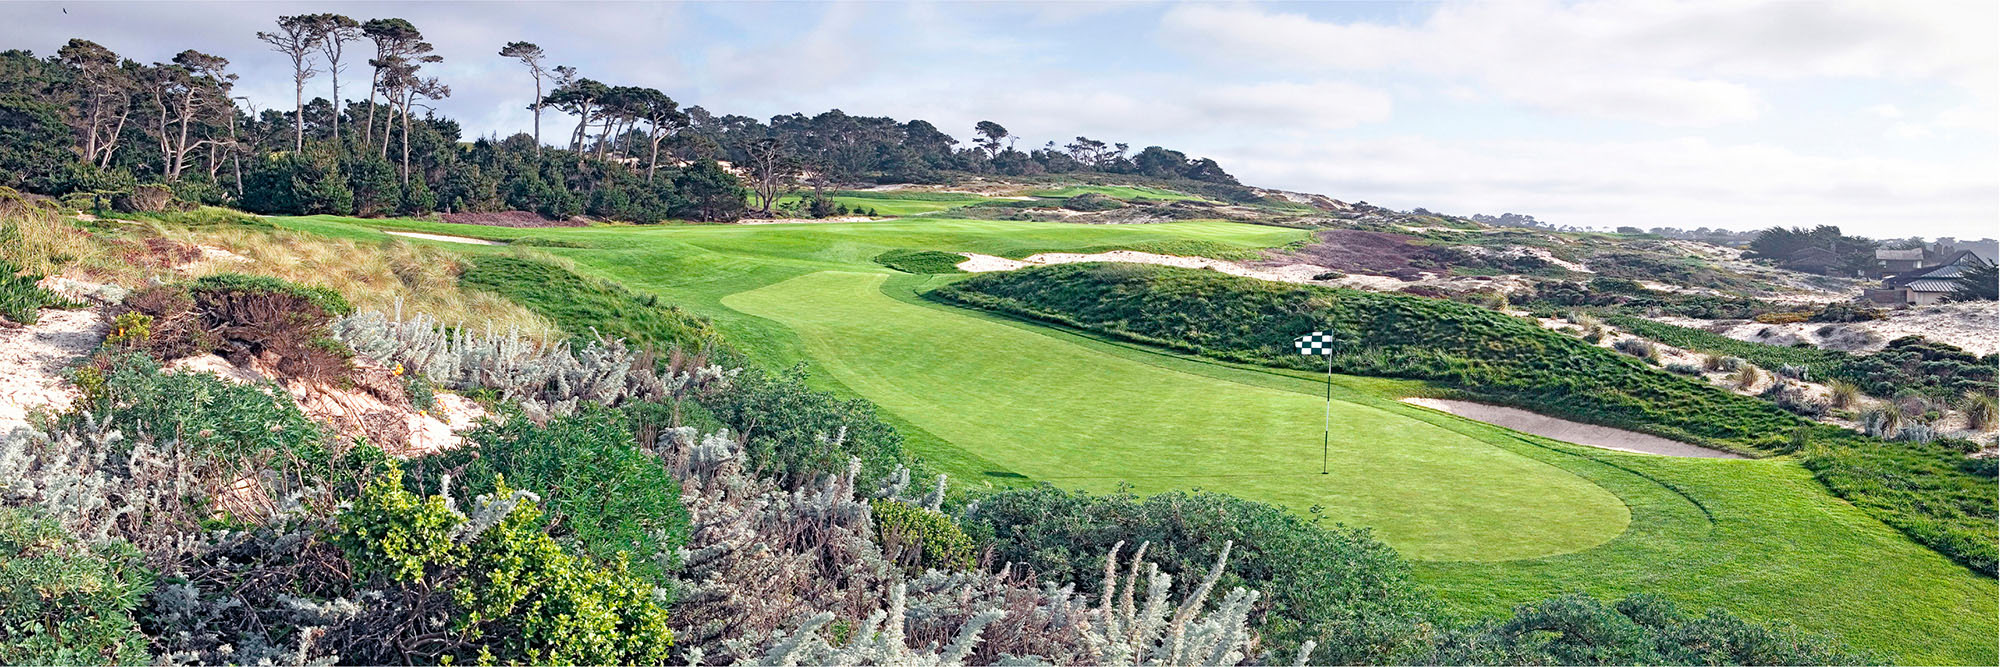 Golf Course Image - Spyglass Hill No. 4